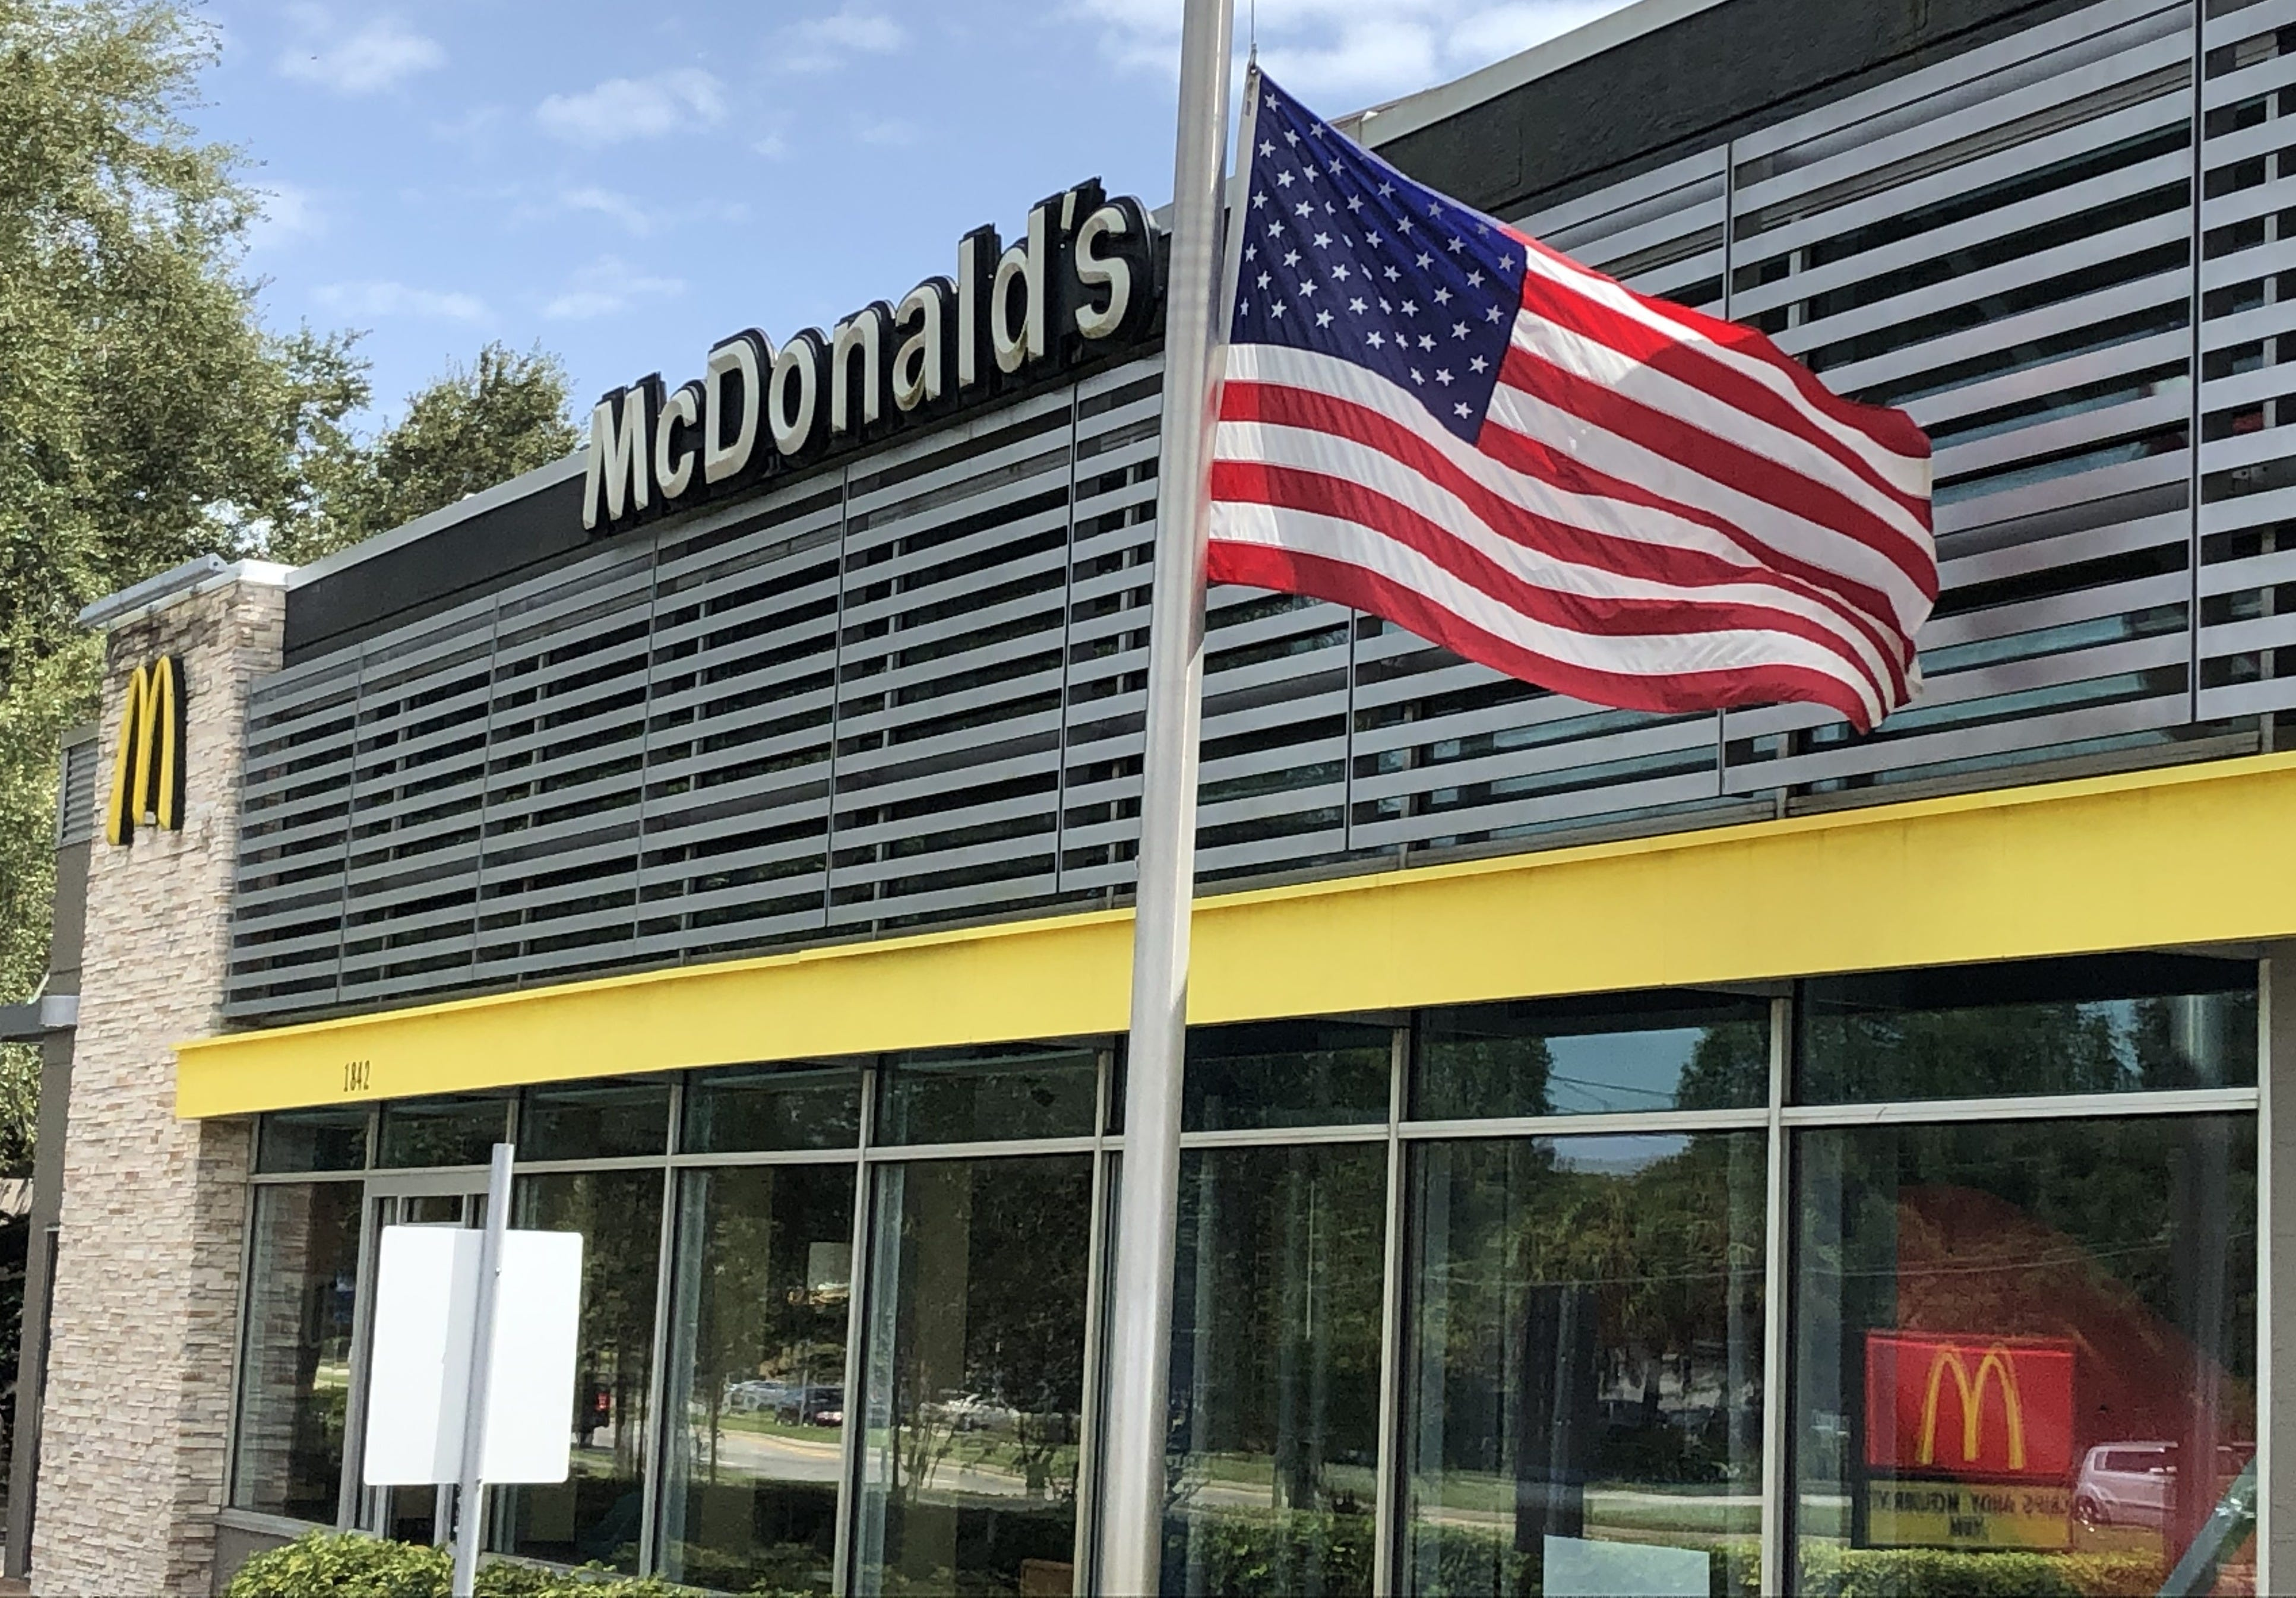 Fact check: McDonald s US flags have not been removed for BLM and antifa